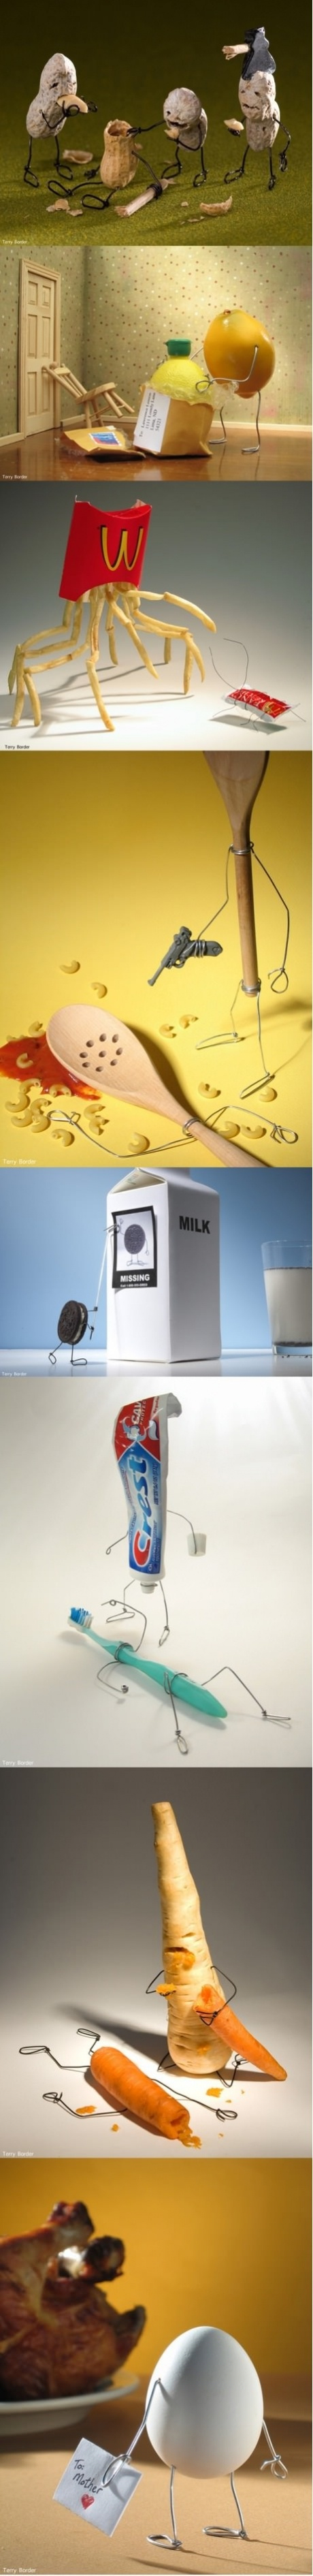 Even inanimate objects can go mad sometimes...